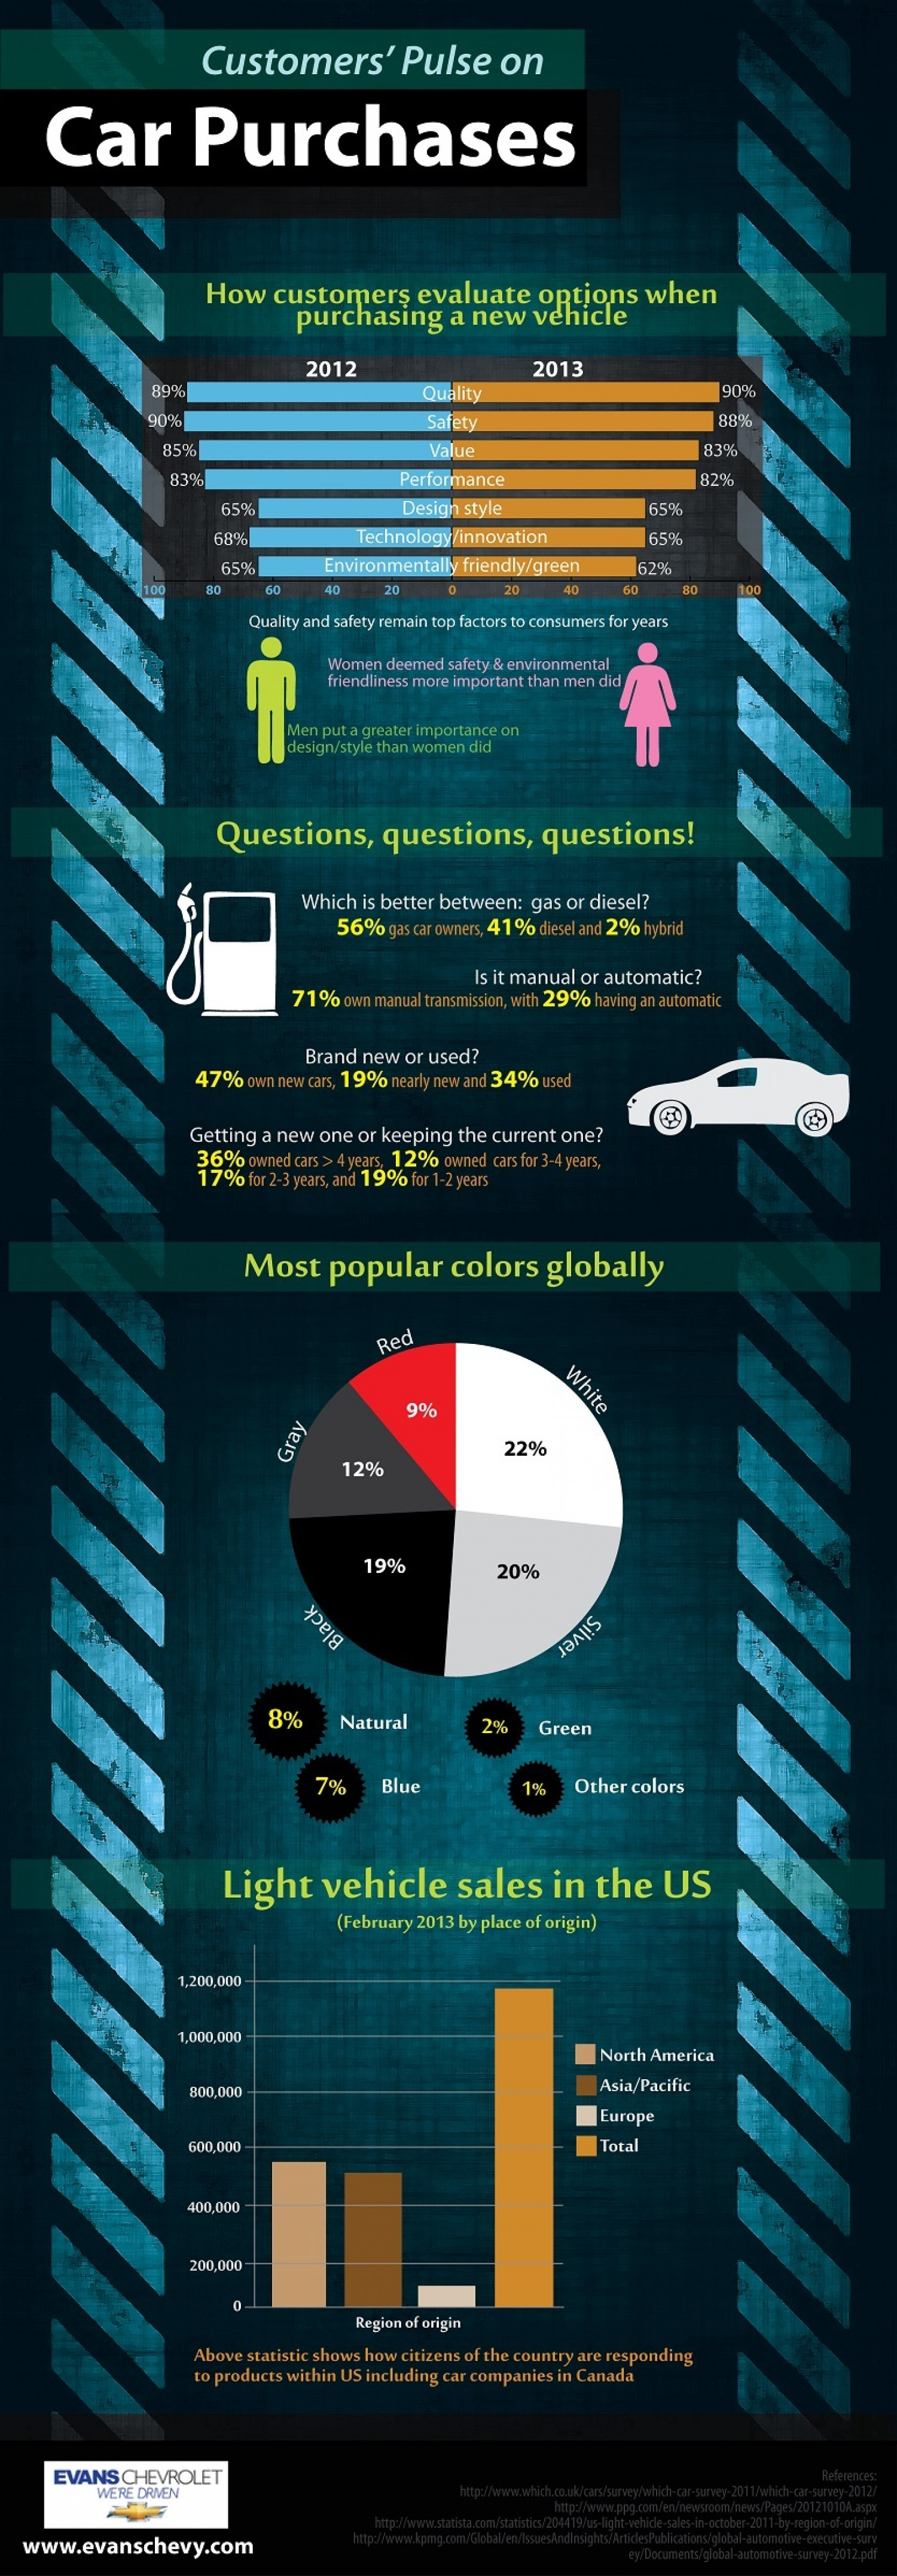 Customer's Pulse on Car Purchases Infographic